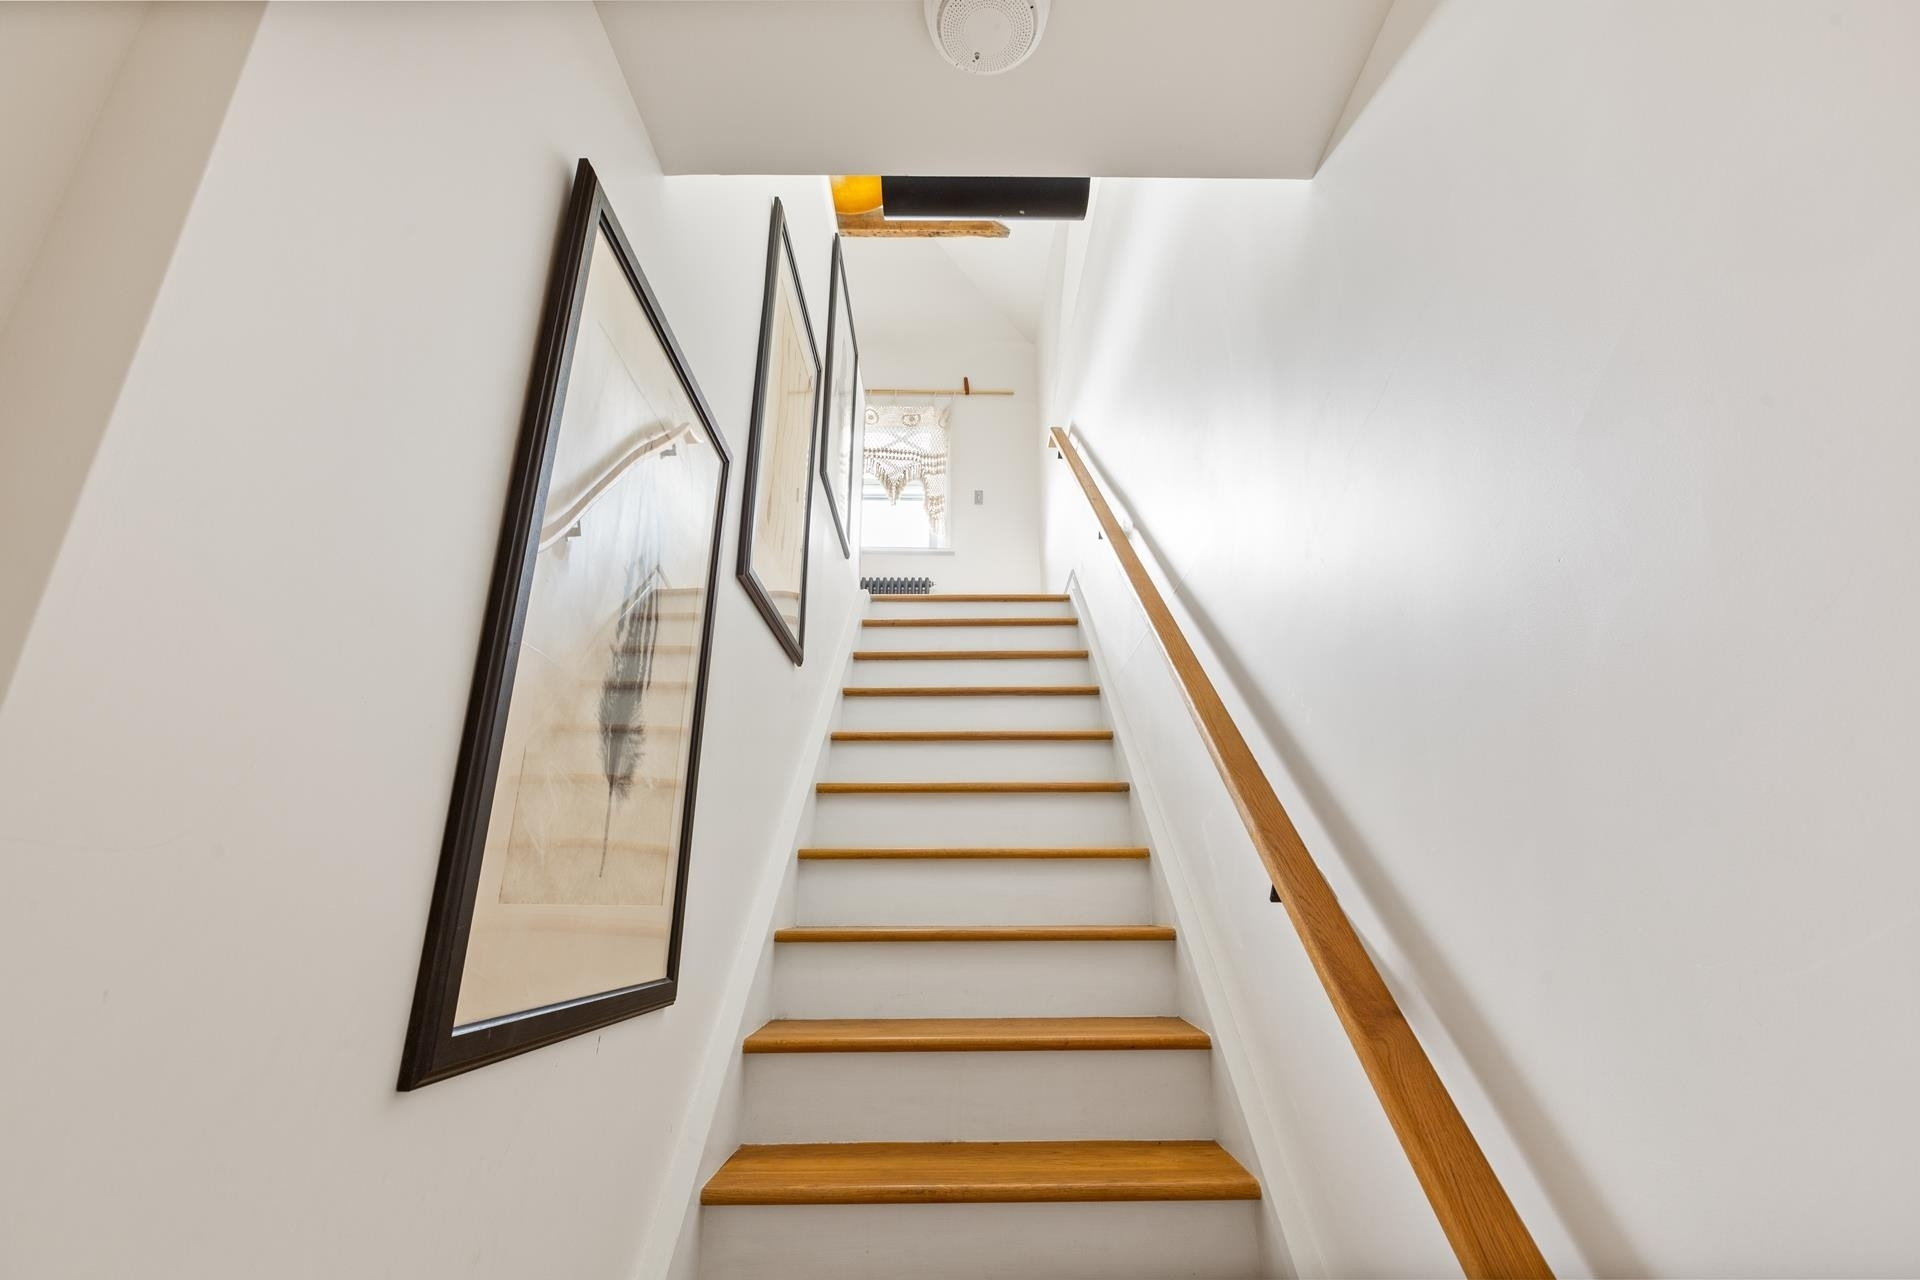 23. Single Family Townhouse for Sale at Ditmas Park, Brooklyn, NY 11226